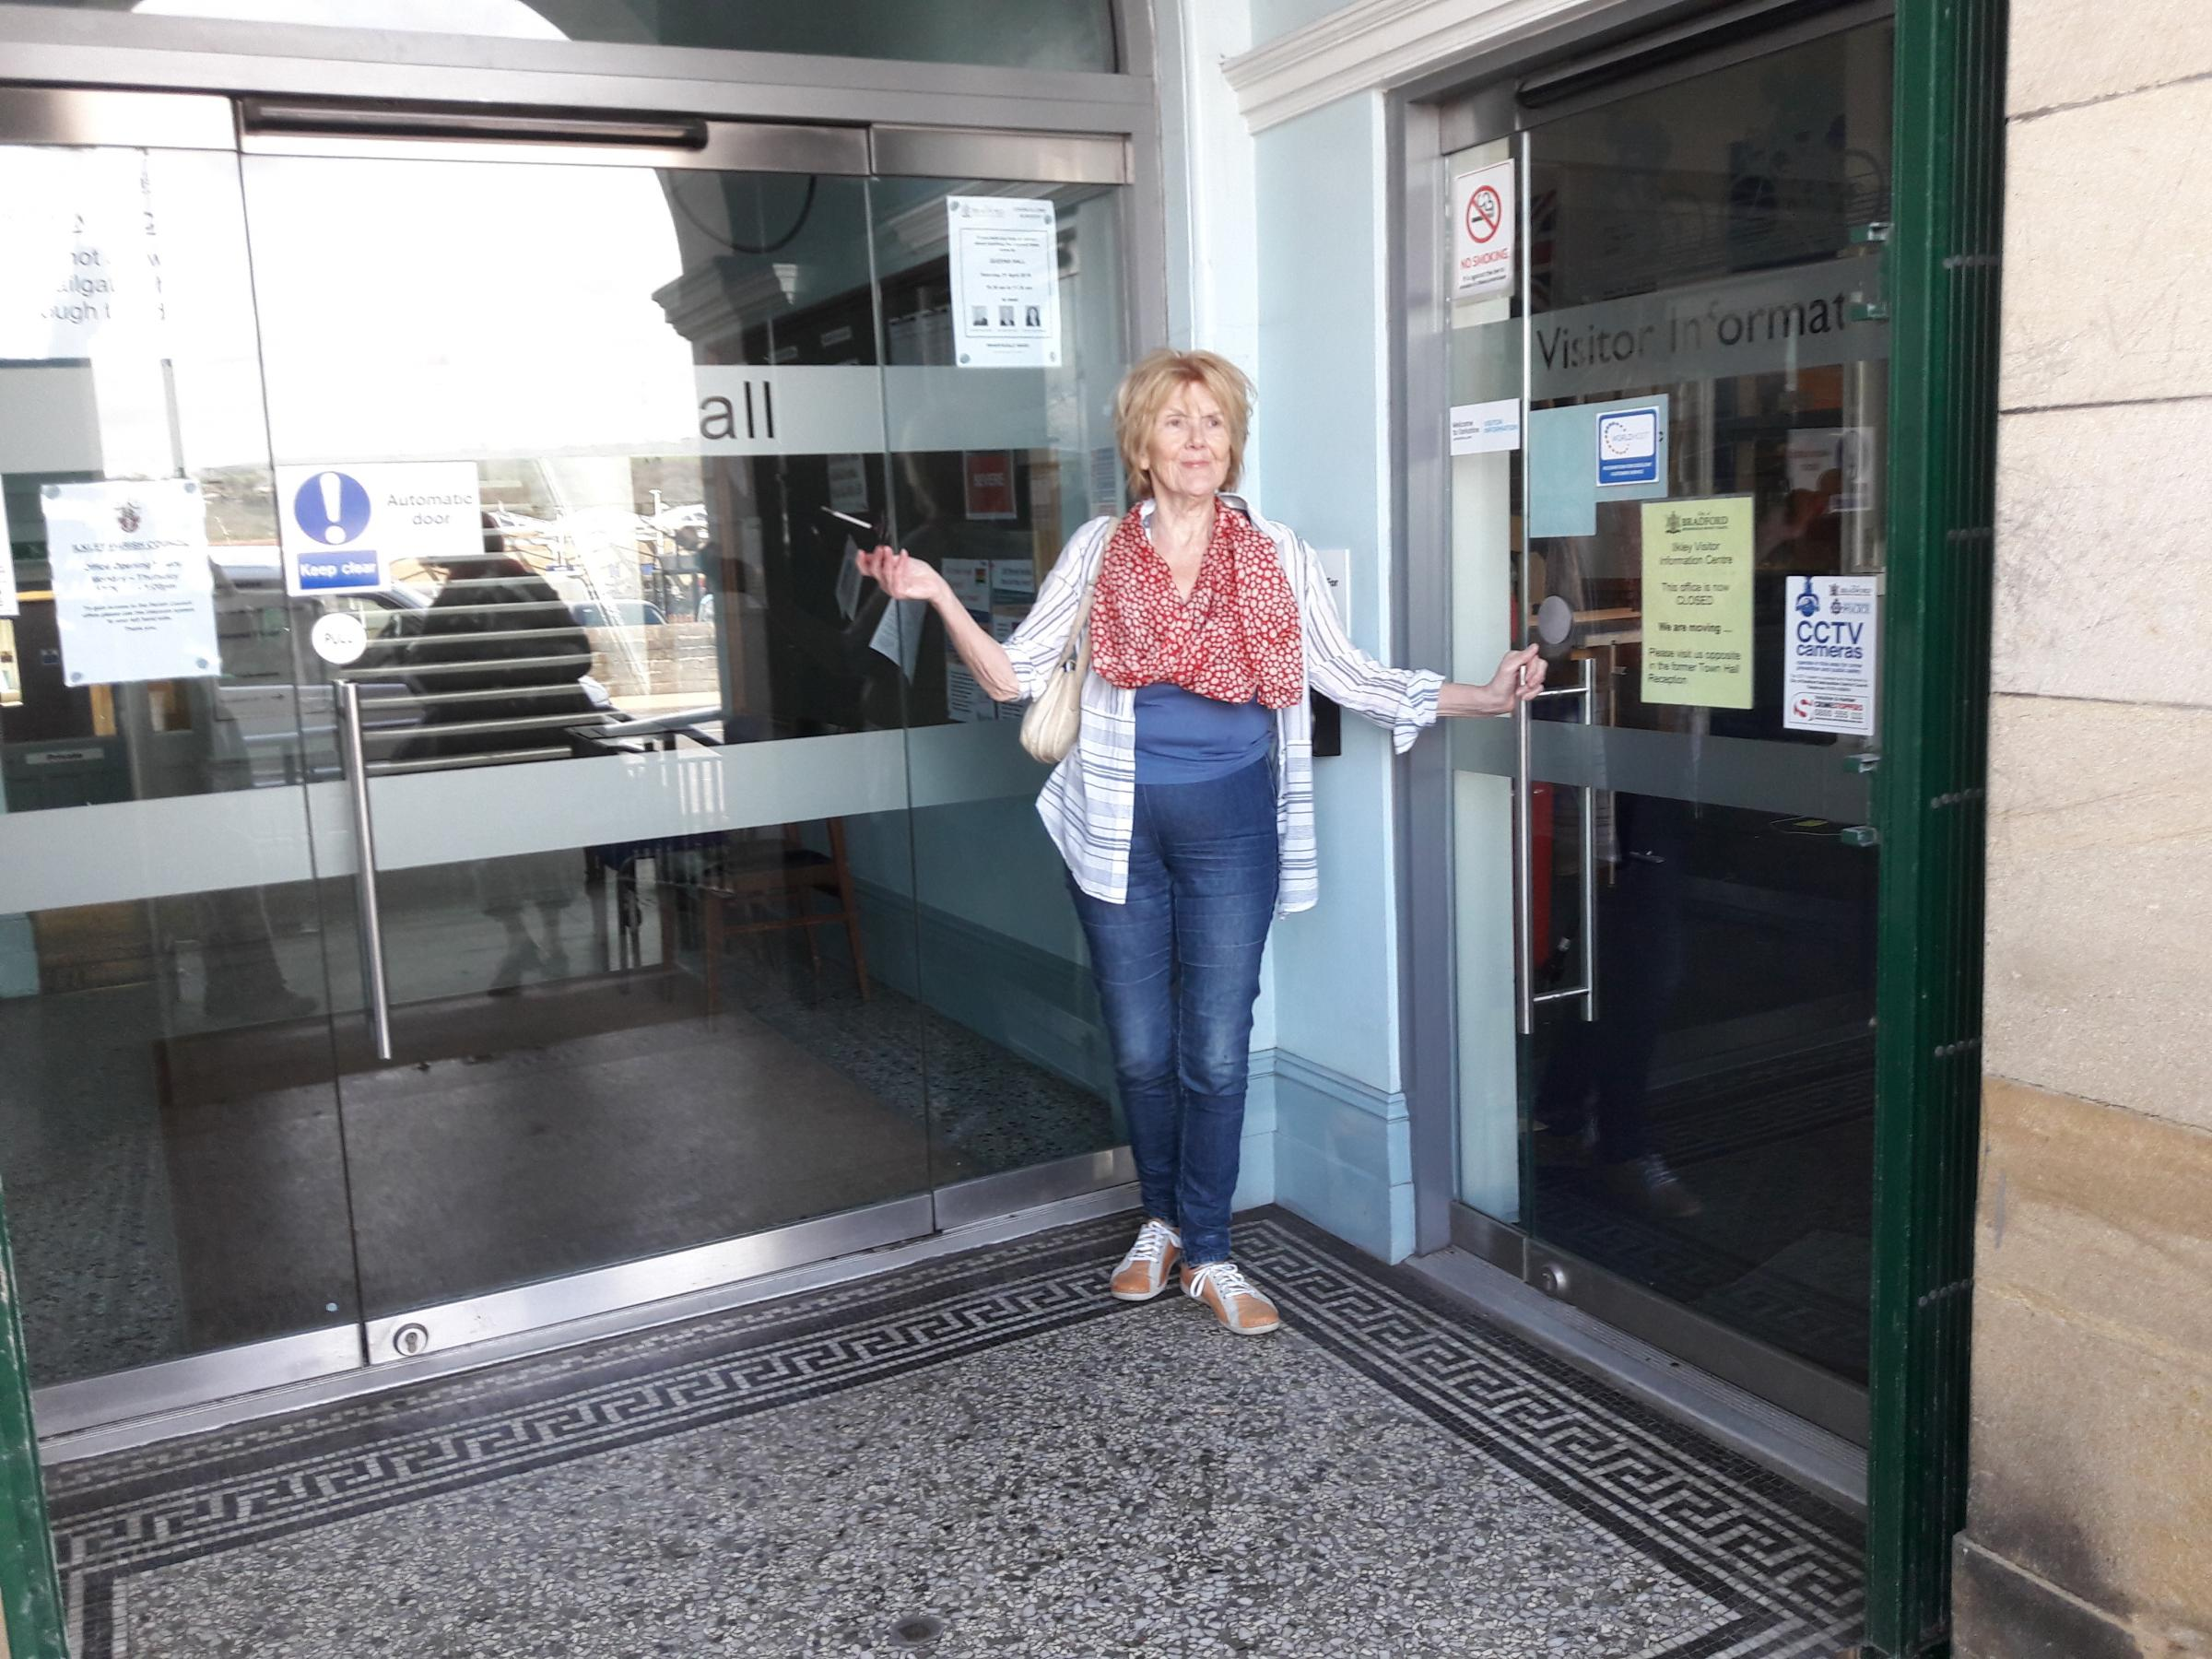 Cllr Anne Hawkesworth outside the closed Visitor Information Centre